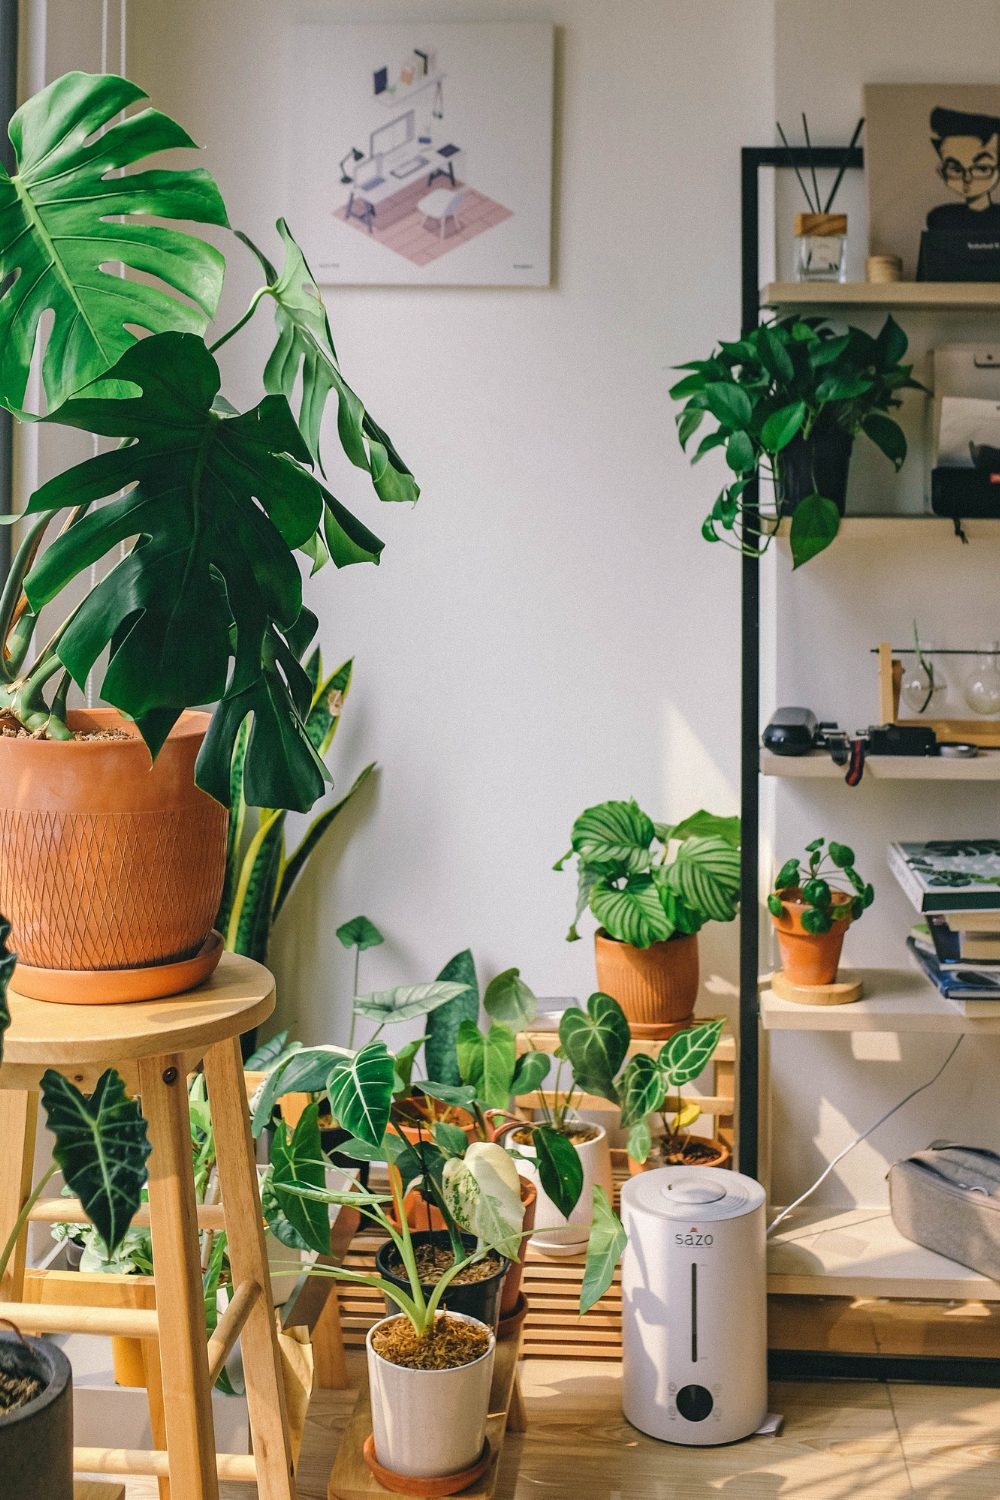 What are your houseplants telling you?